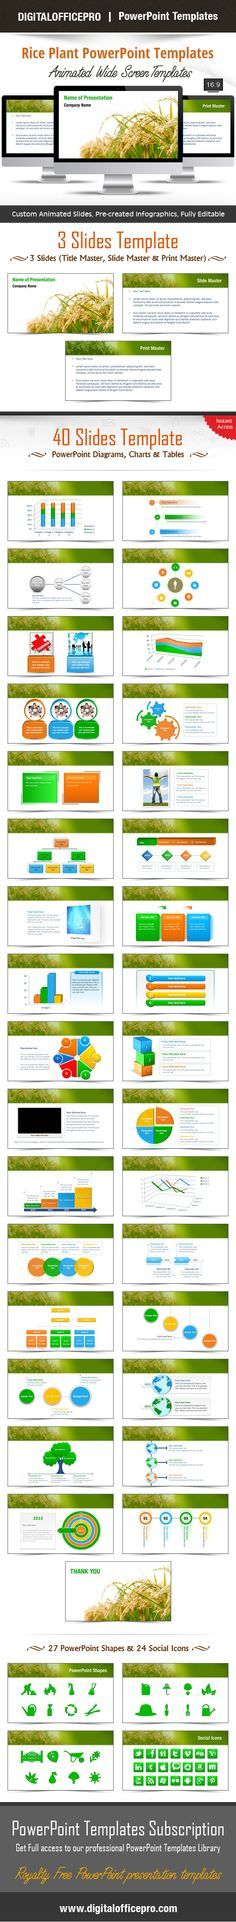 Rice Plant PowerPoint Template Backgrounds Impress and Engage your audience with Rice Plant PowerPoi Plants Grown In Water, Room With Plants, Plant Sketches, Rice Plant, Planting For Kids, Background Powerpoint, Plant Background, Plant Wallpaper, Diy Plant Stand